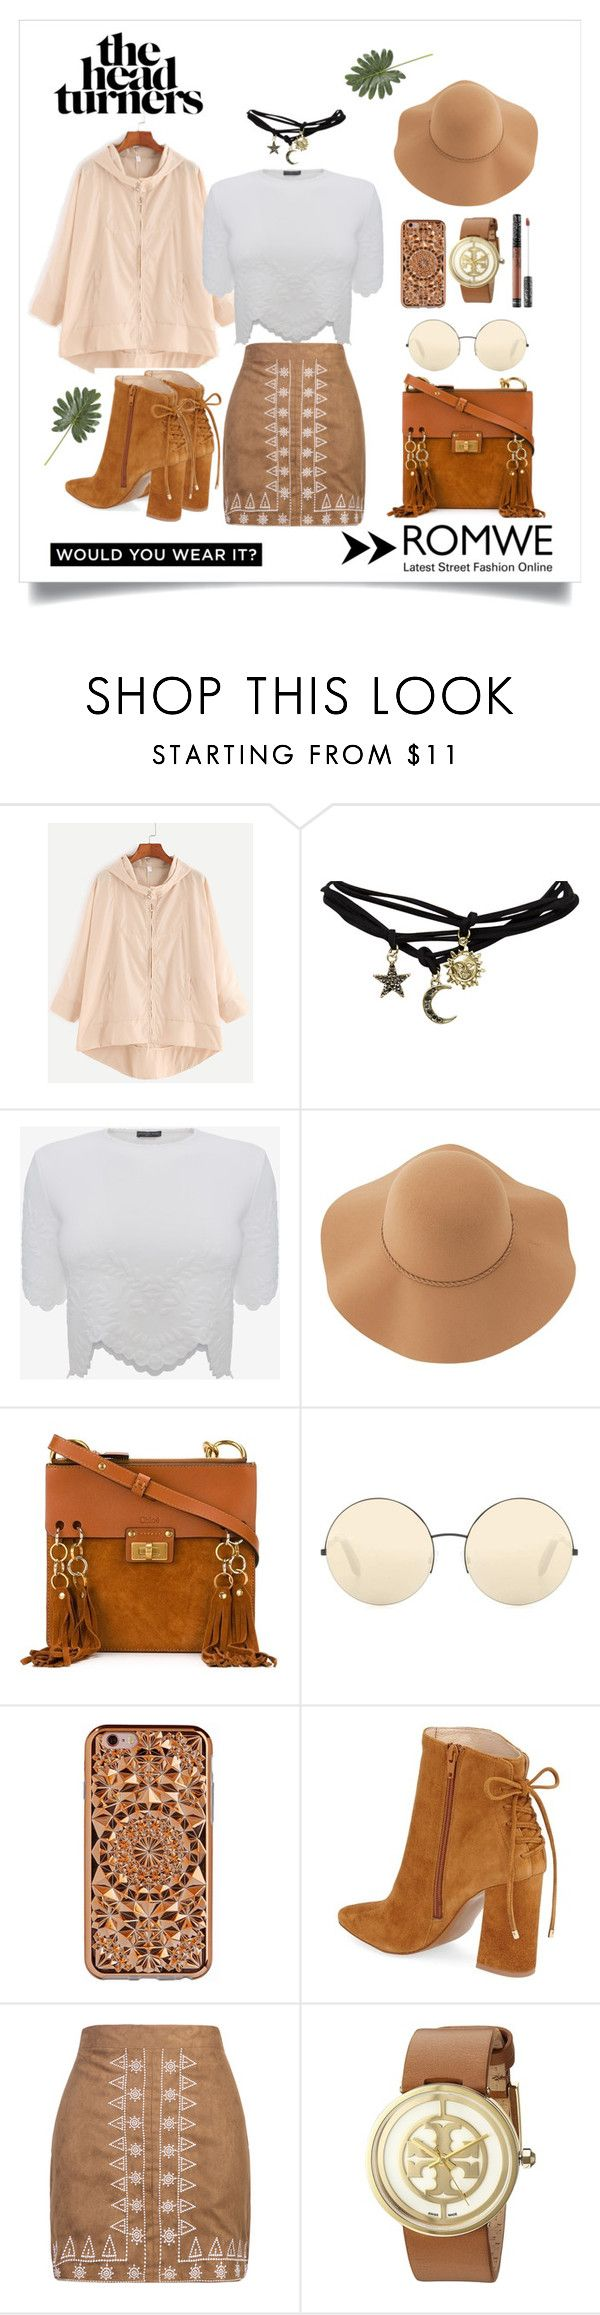 """""""Brownies"""" by sabrinadiaa ❤ liked on Polyvore featuring Wet Seal, Alexander McQueen, Sans Souci, Chloé, Victoria Beckham, Felony Case, Sephora Collection, Kristin Cavallari, WithChic and Tory Burch"""